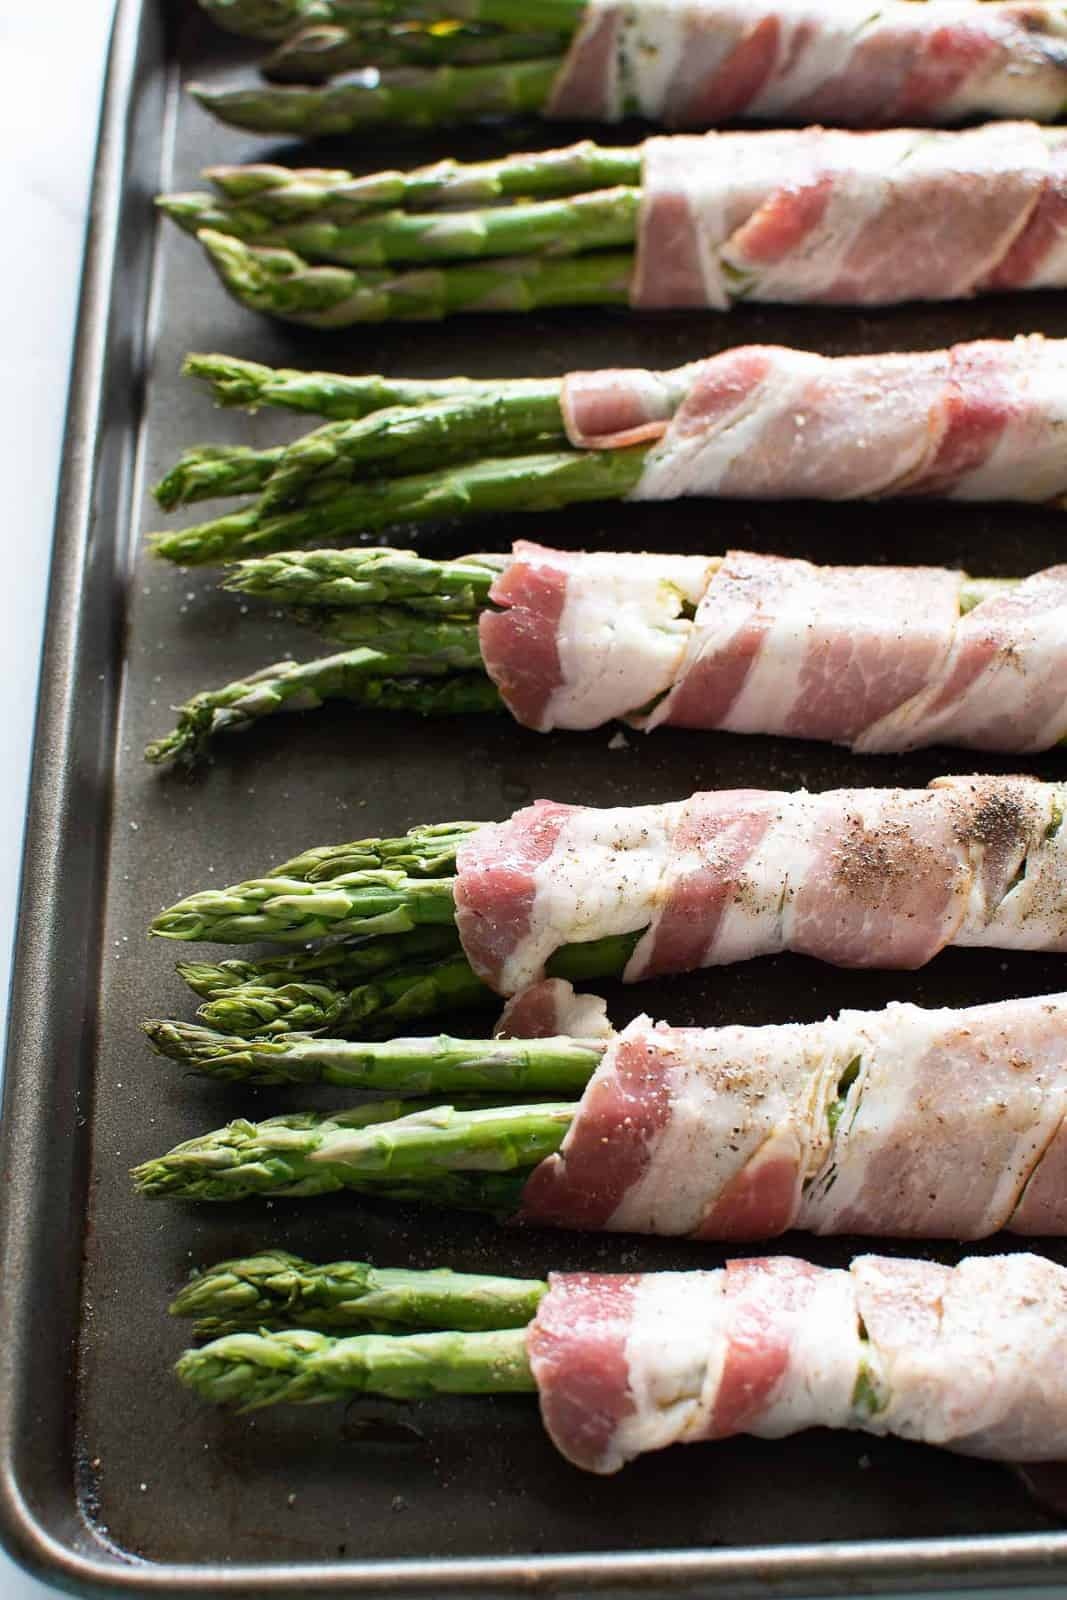 Uncooked asparagus wrapped in raw bacon on a baking sheet.